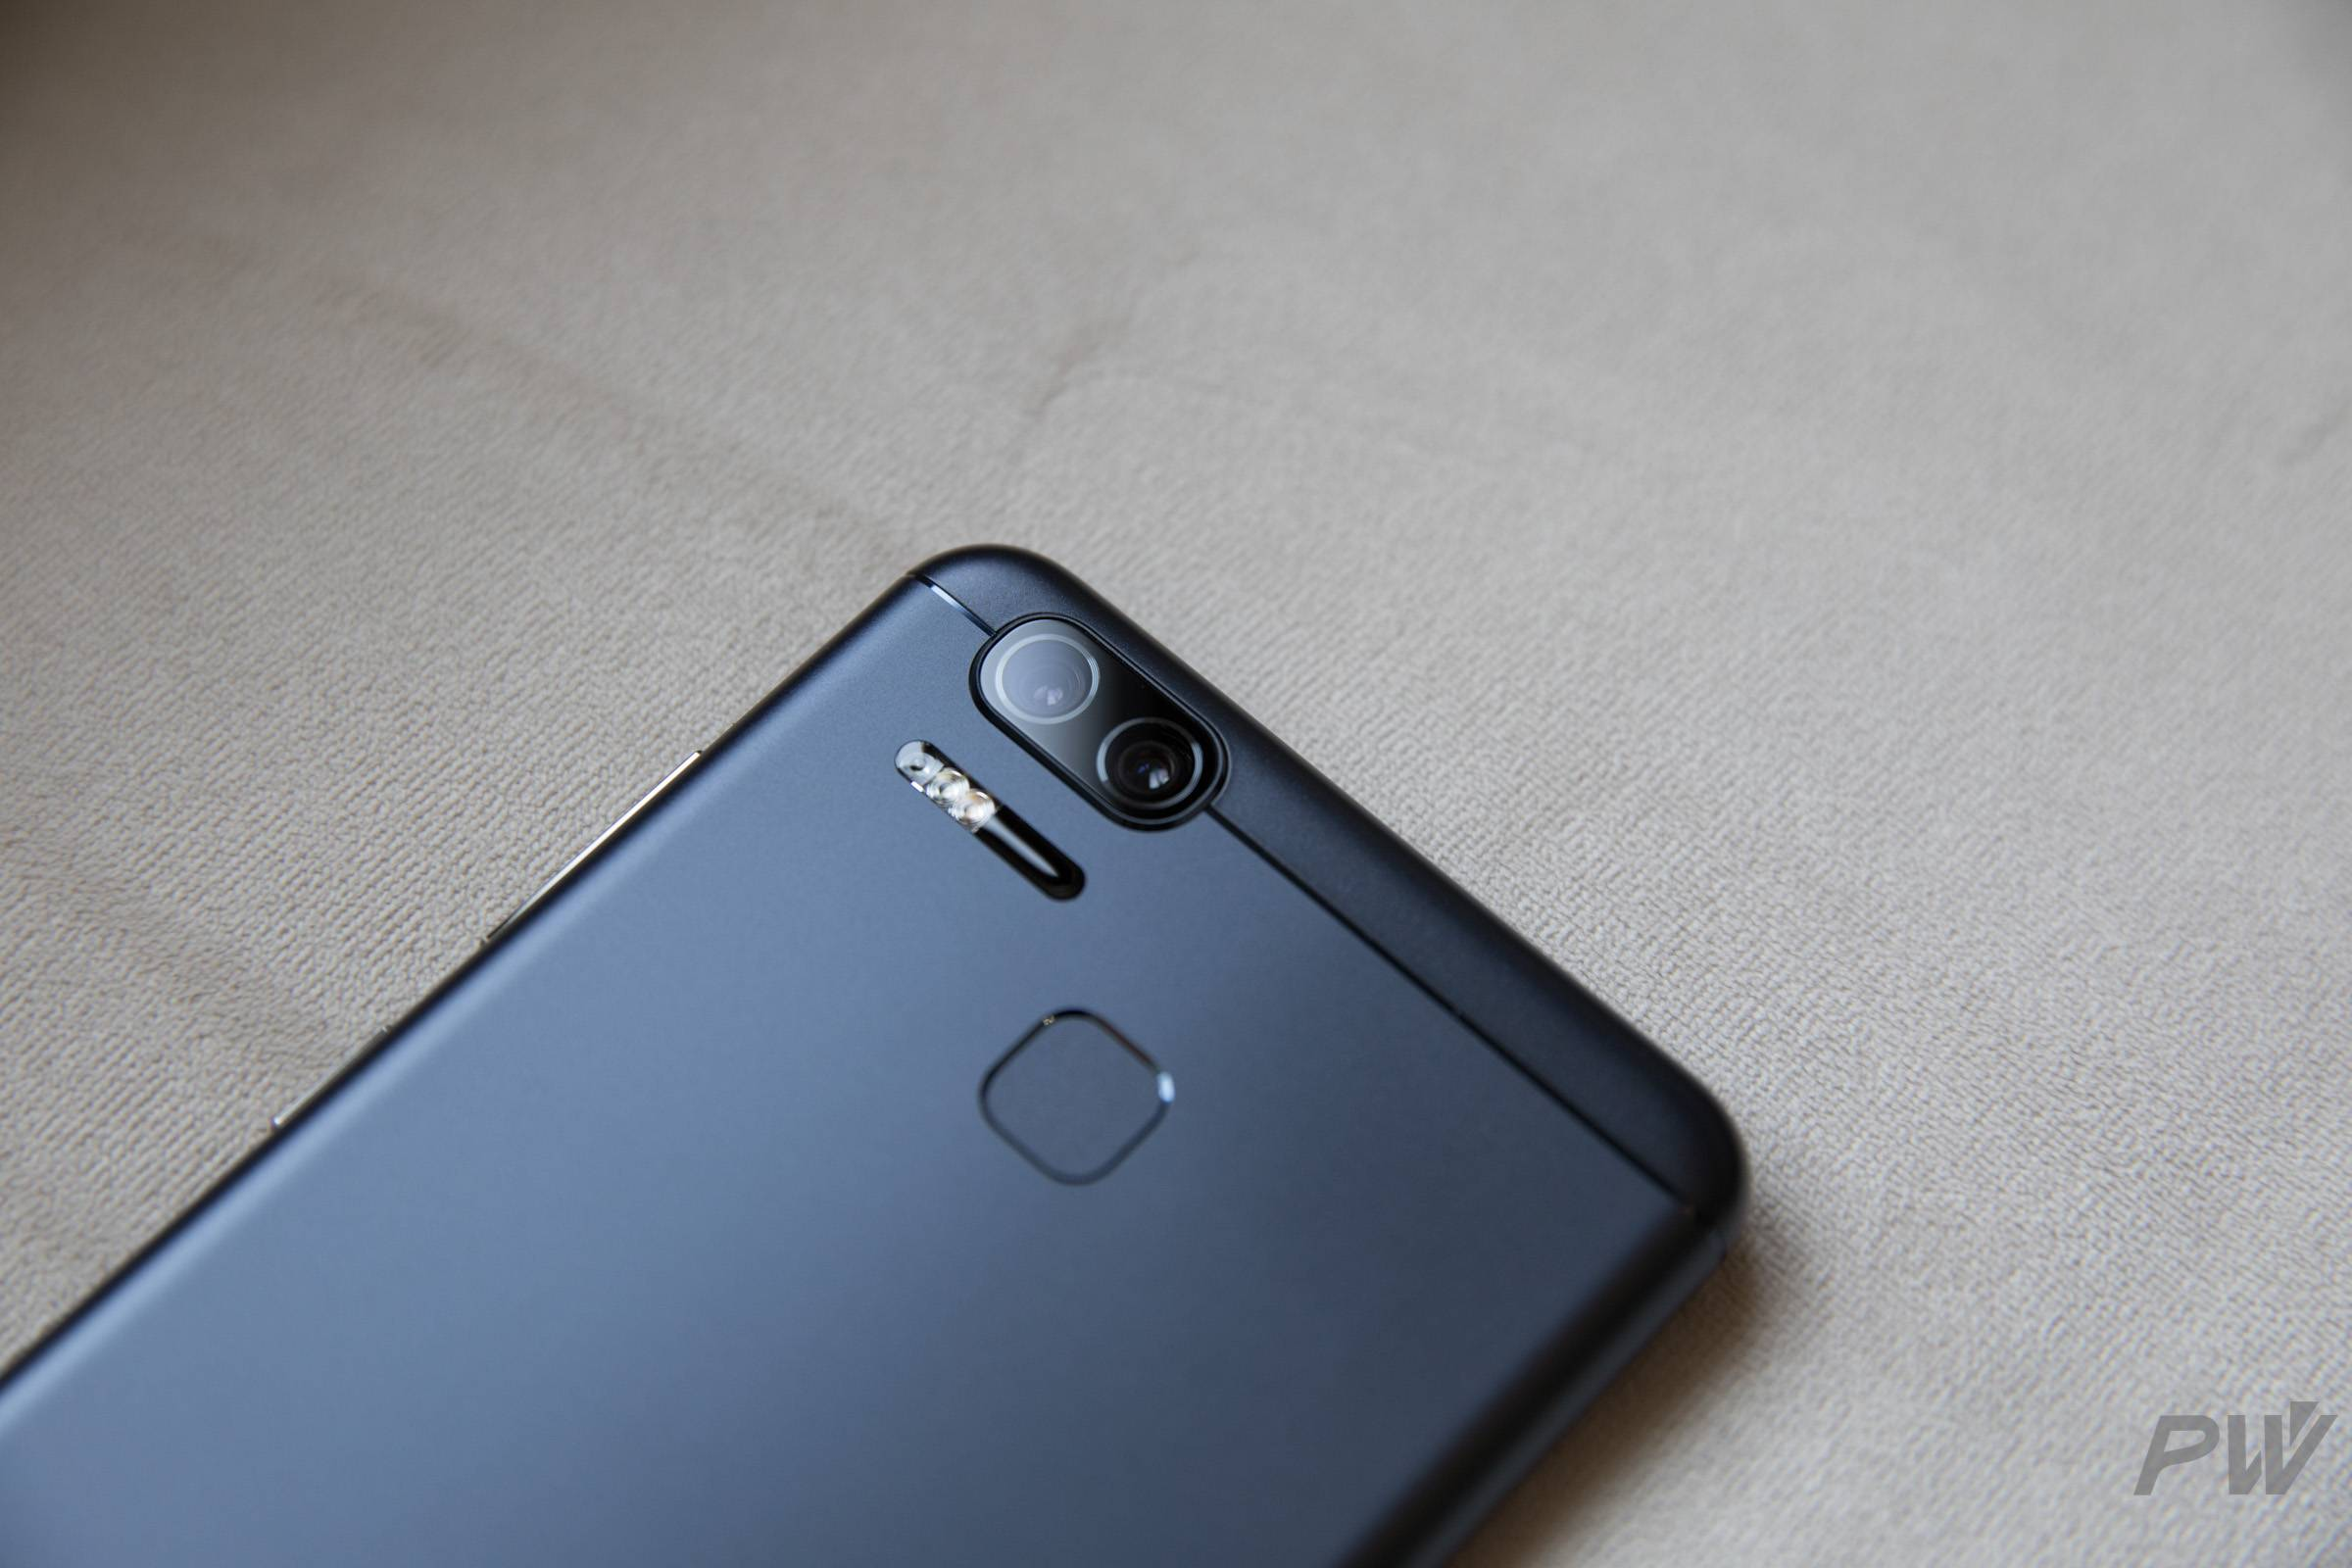 ASUS ZenFone 3 Zoom PW Photo by Hao Ying-10